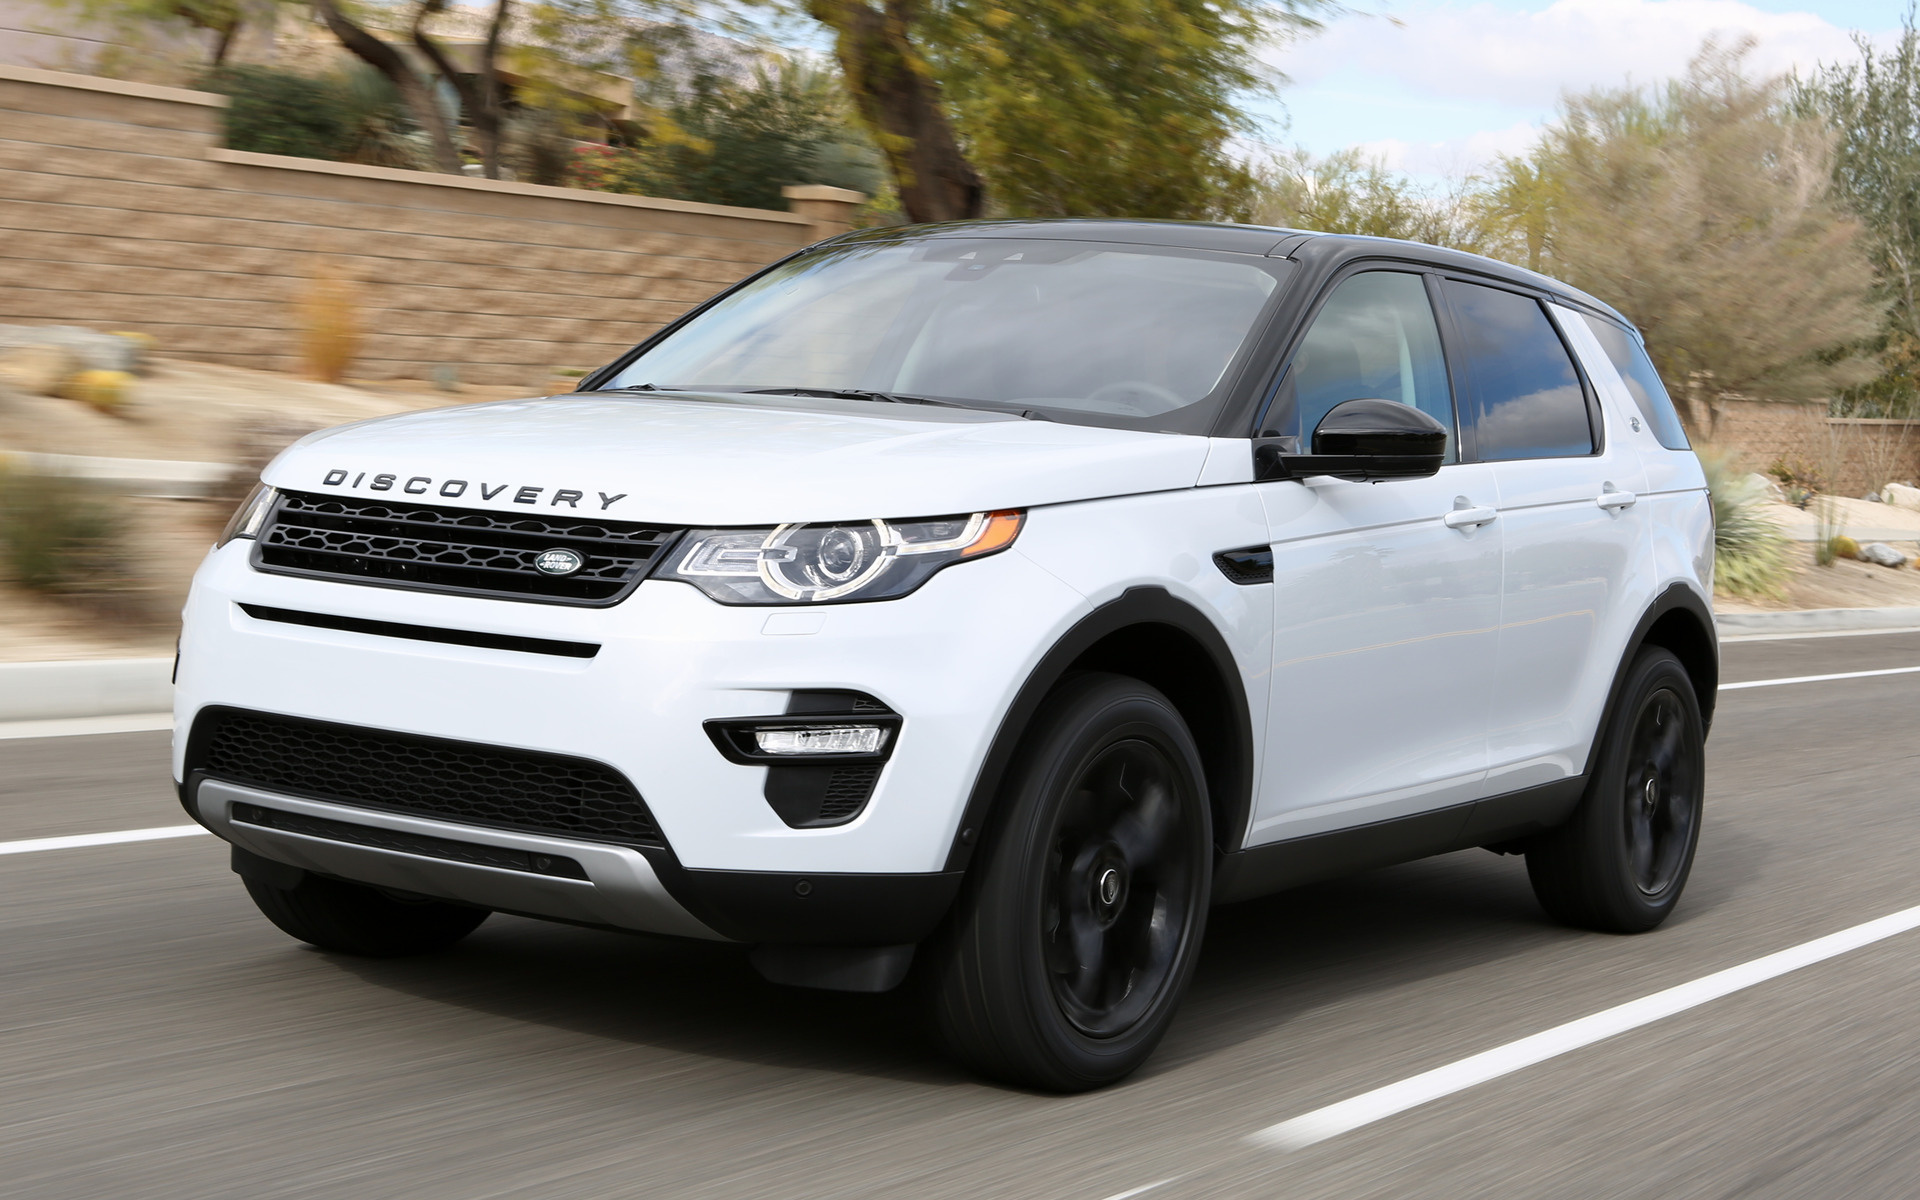 Land Rover Discovery Sport >> 2015 Land Rover Discovery Sport HSE Luxury Black Design Pack (US) - Wallpapers and HD Images ...